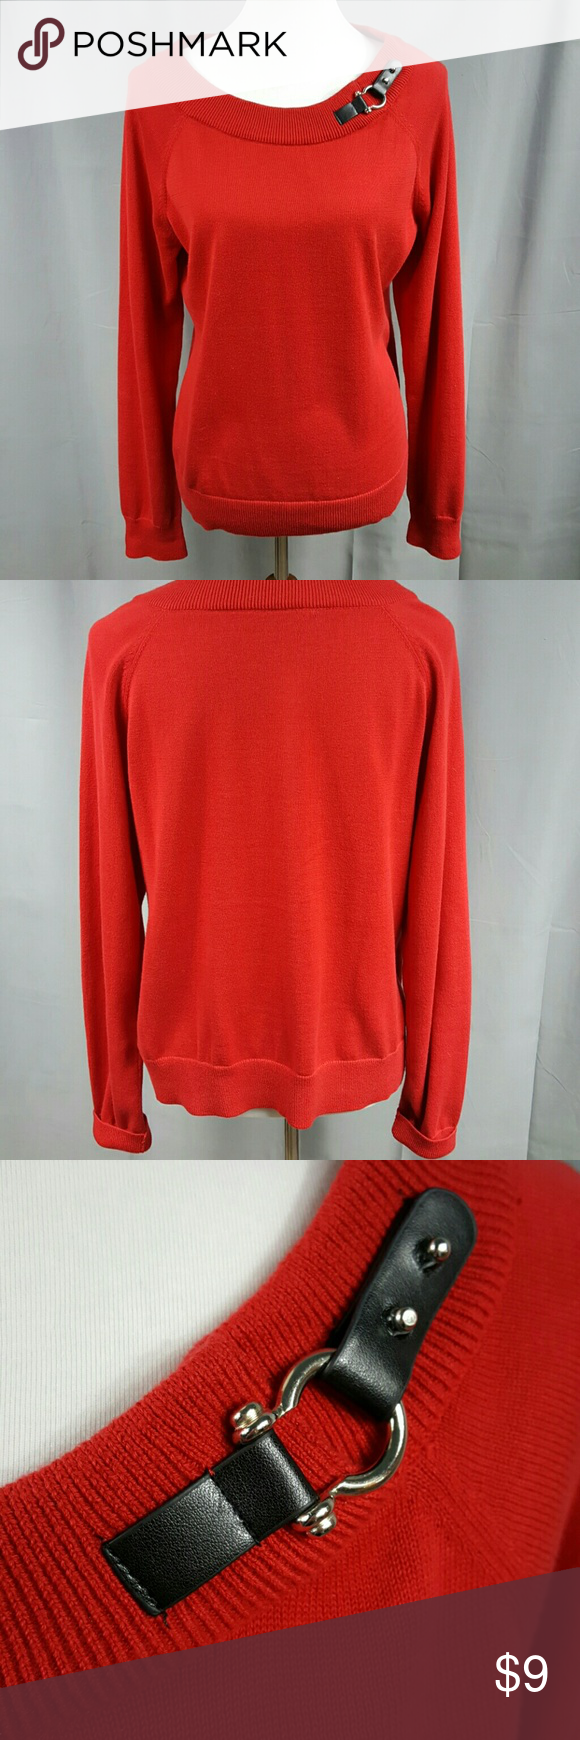 Red sweater with buckle detailing You don't have to wear an ugly ...